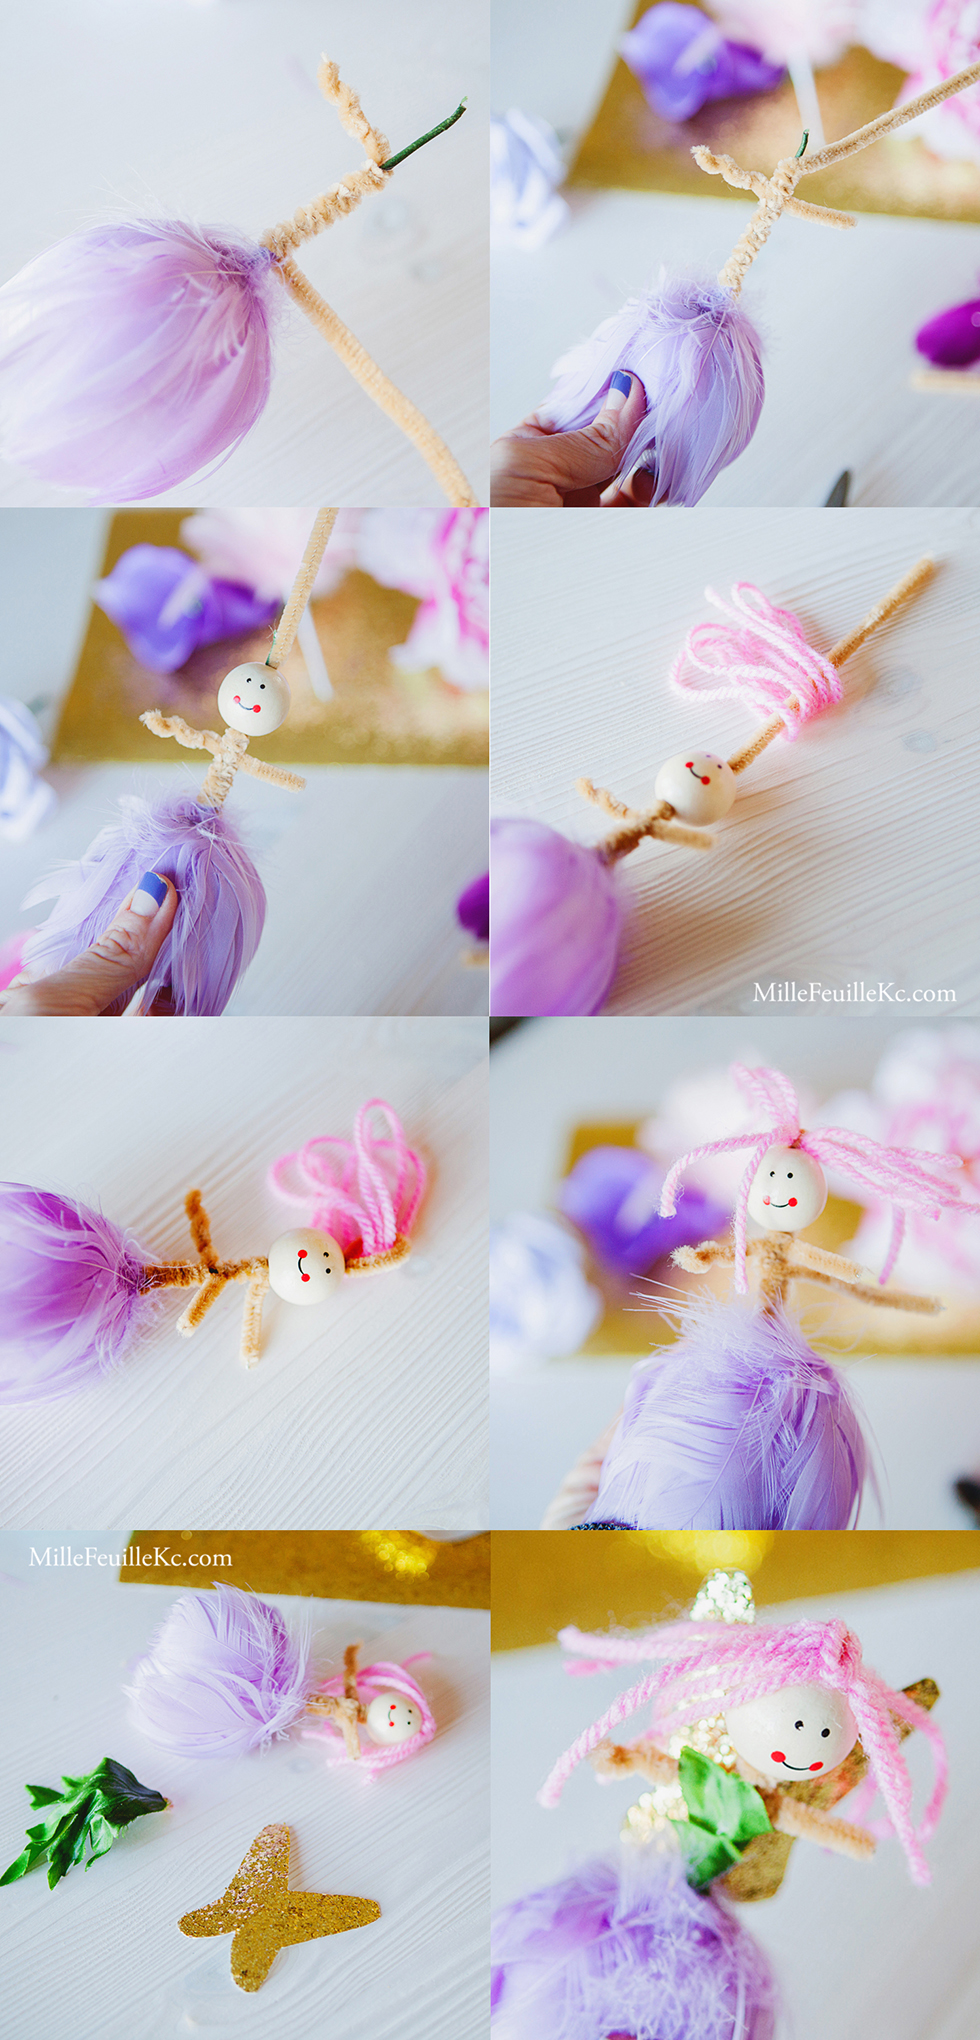 flower-fairiesdiy-kids-crafts